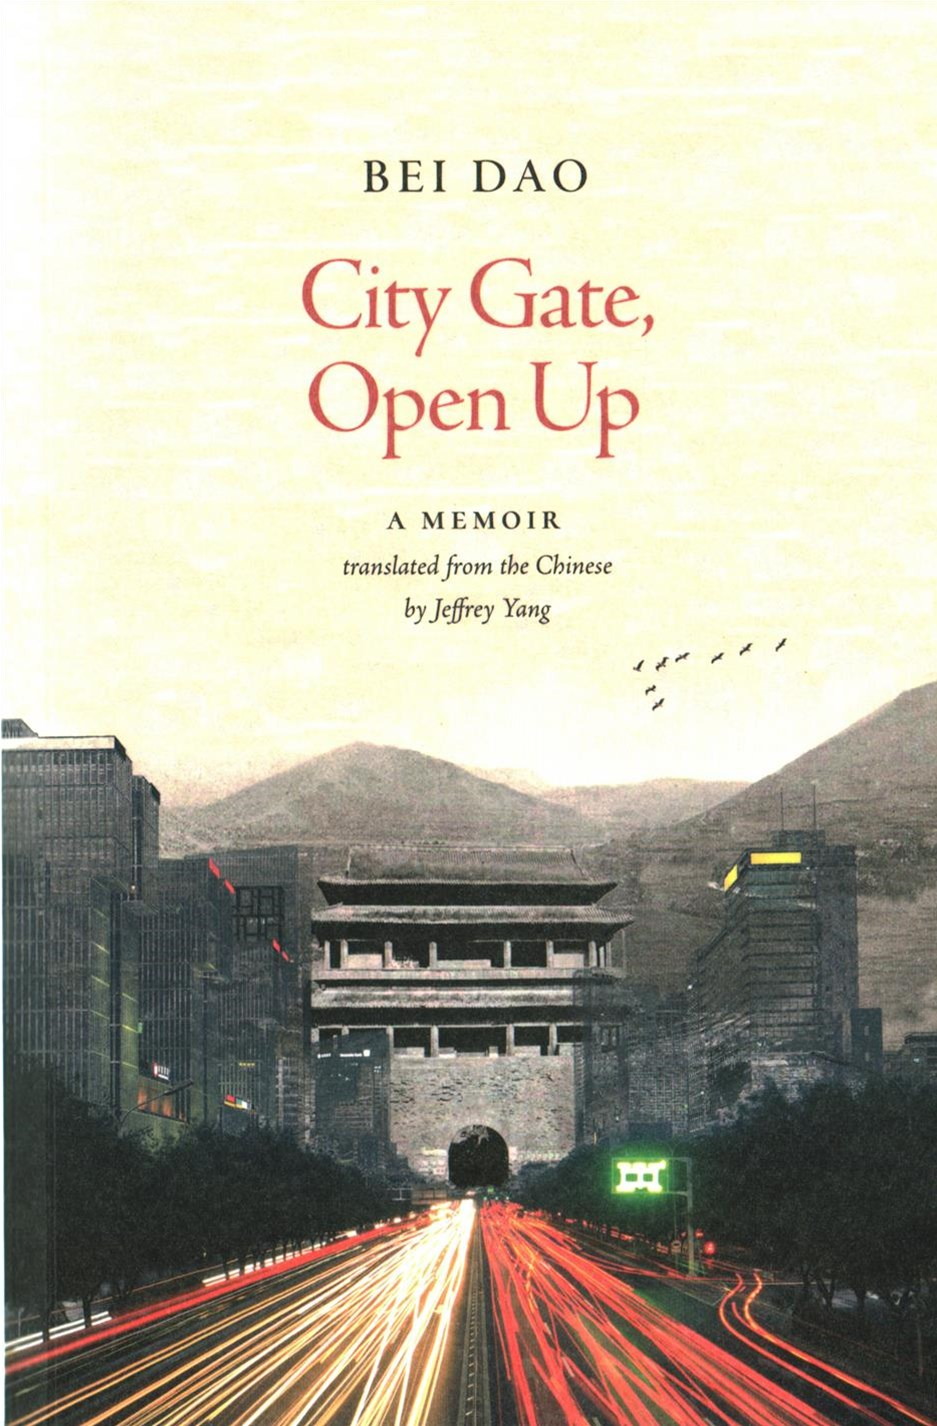 City Gate, Open Up